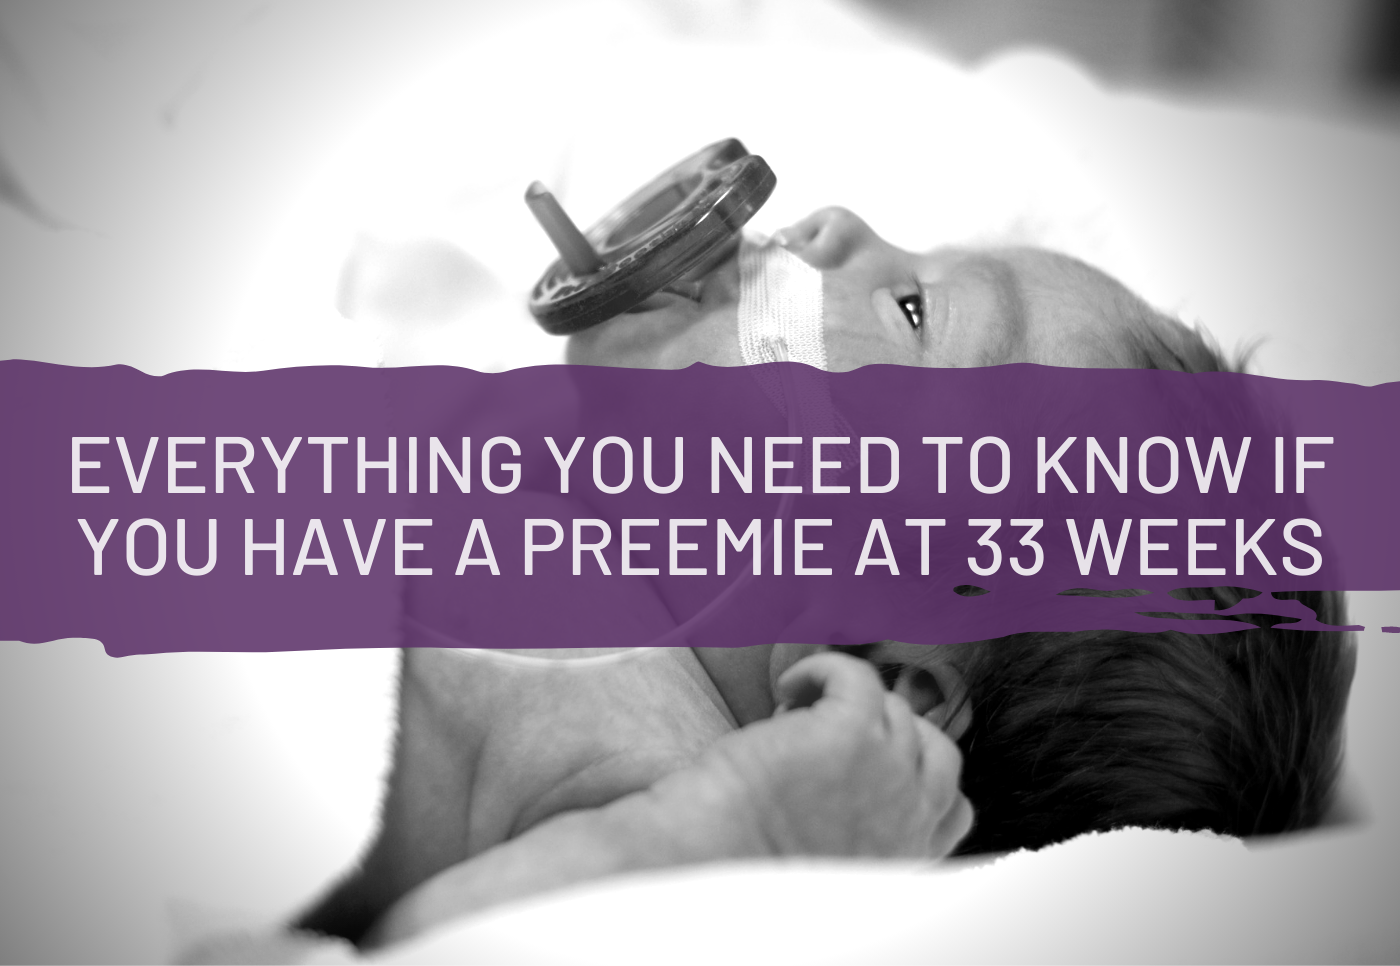 What To Expect When You Have a Preemie at 33 Weeks - I ...